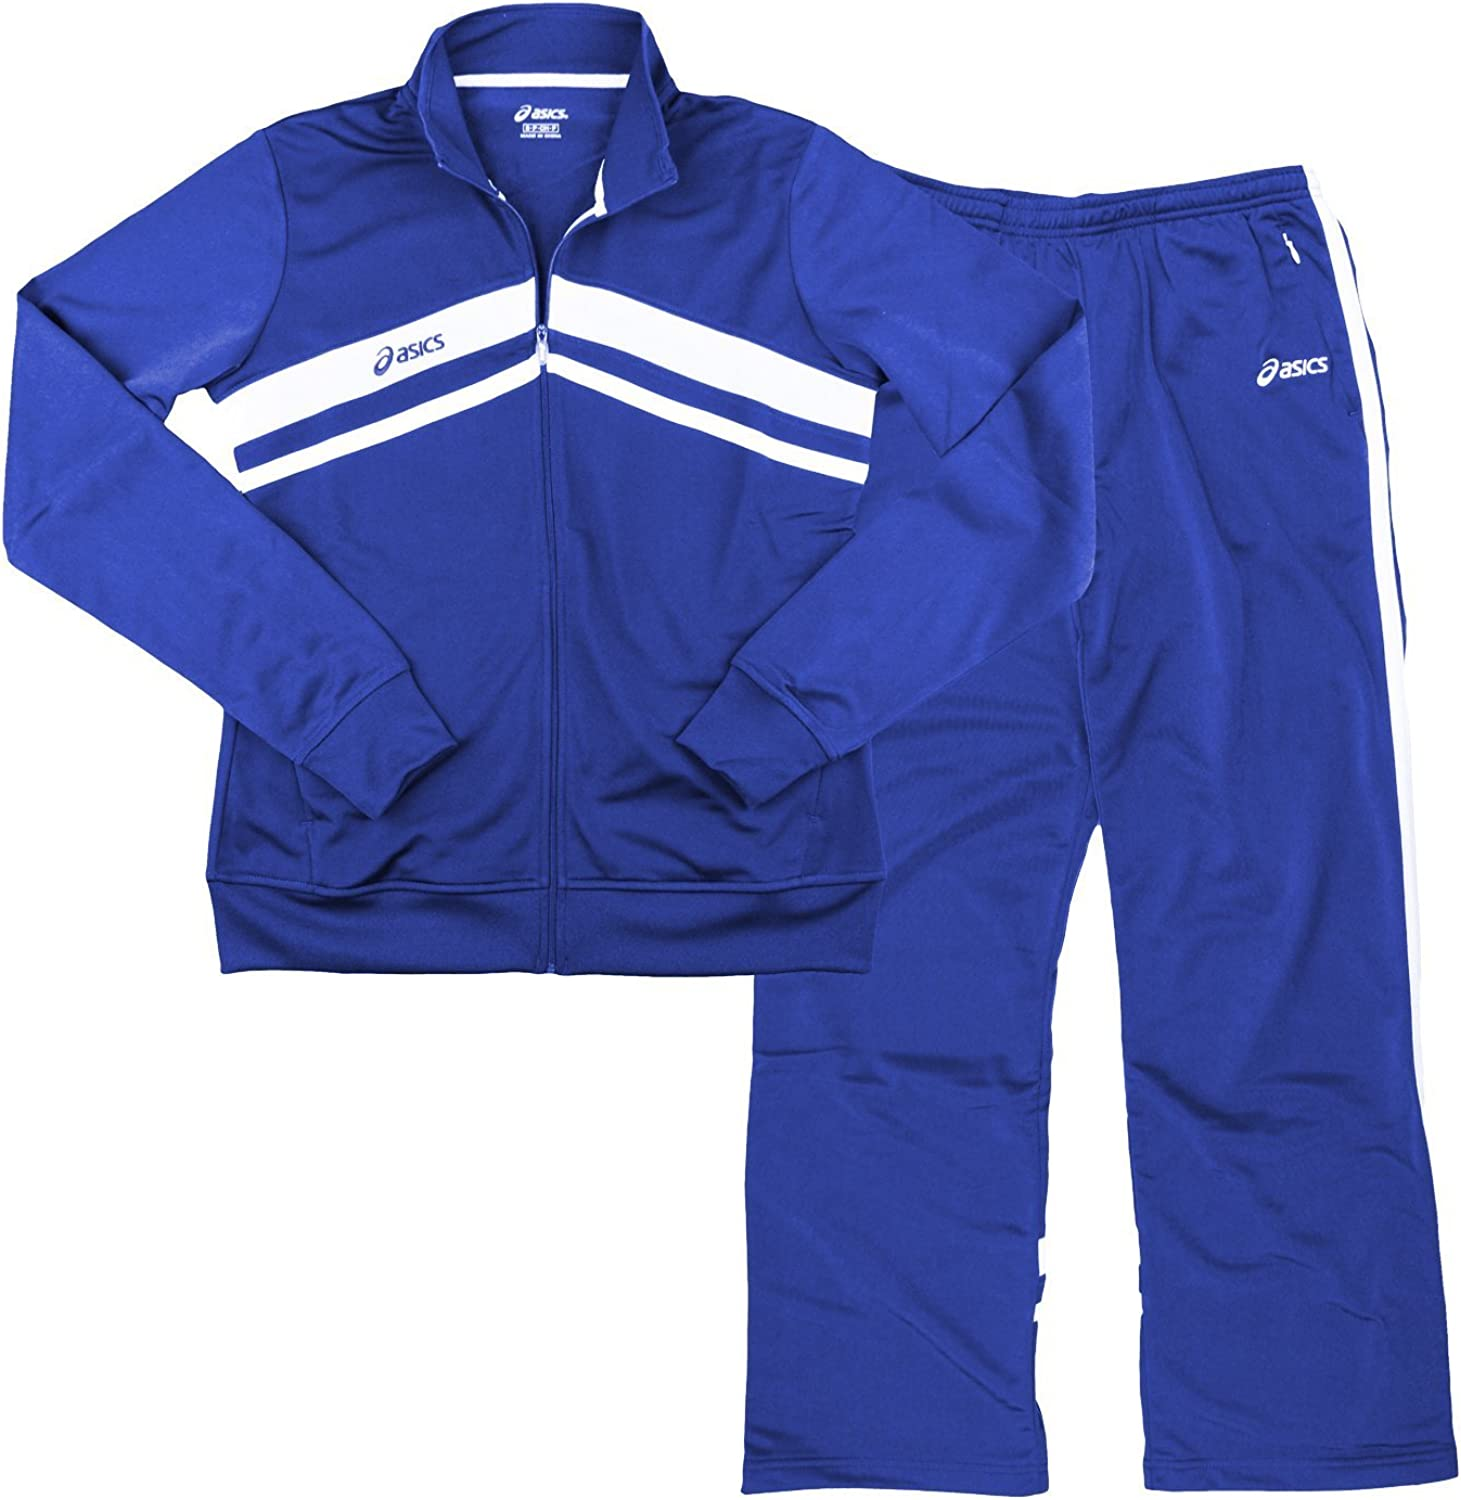 ASICS Women's Cabrillo Pants and Seattle Mall Set Lowest price challenge Royal Jacket Blue